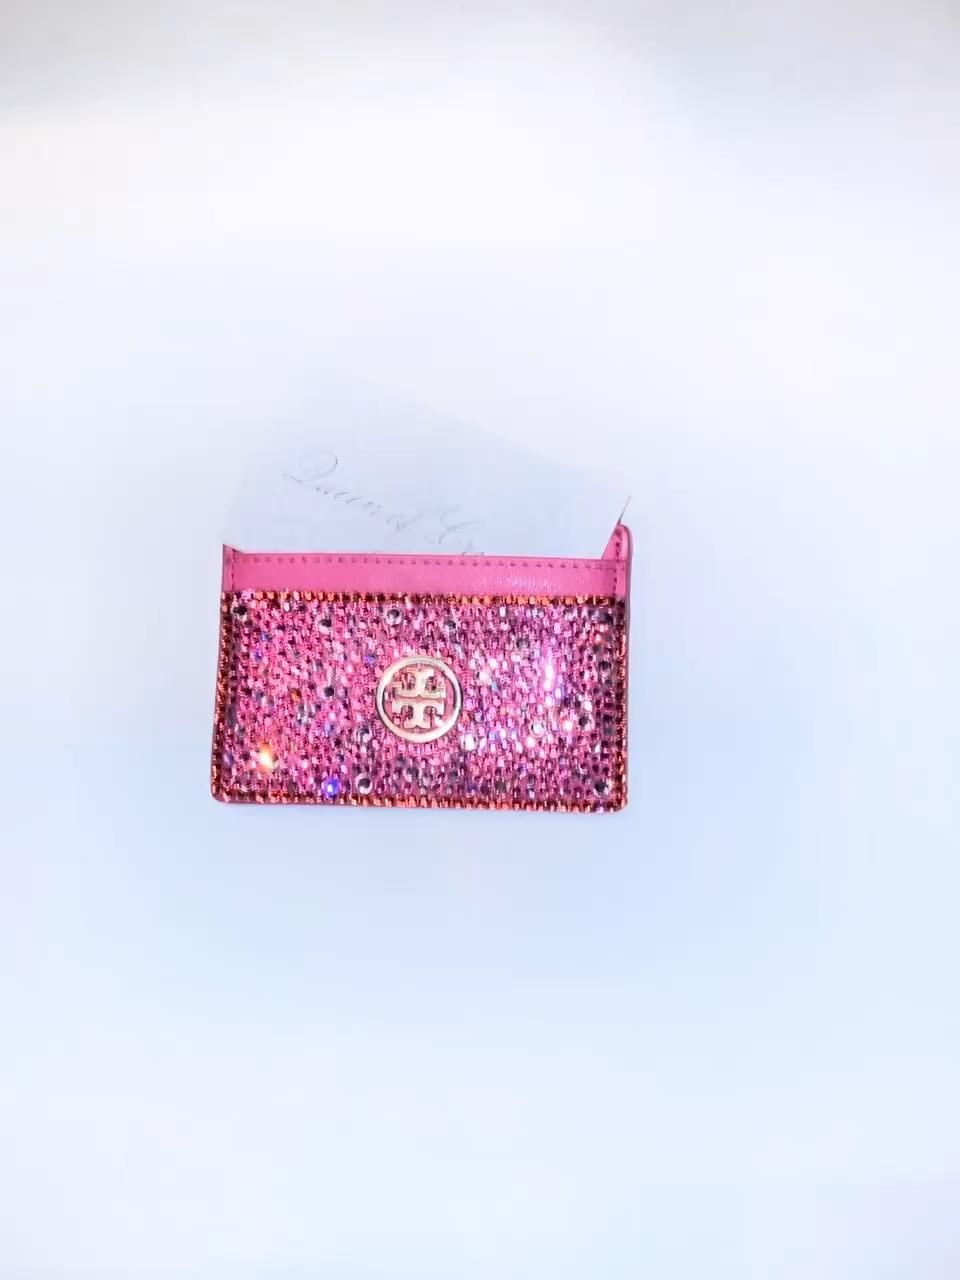 Tory Burch Custom Swarovski Crystal CC Holder. #toryburch #ilovepink #palmsprings #artdeco #westpalmbeach #posh #sparkle #swarovski #ccholder #money #wallet #laurenlyle #queenofcrystal #holidaygifts #stockingstuffers